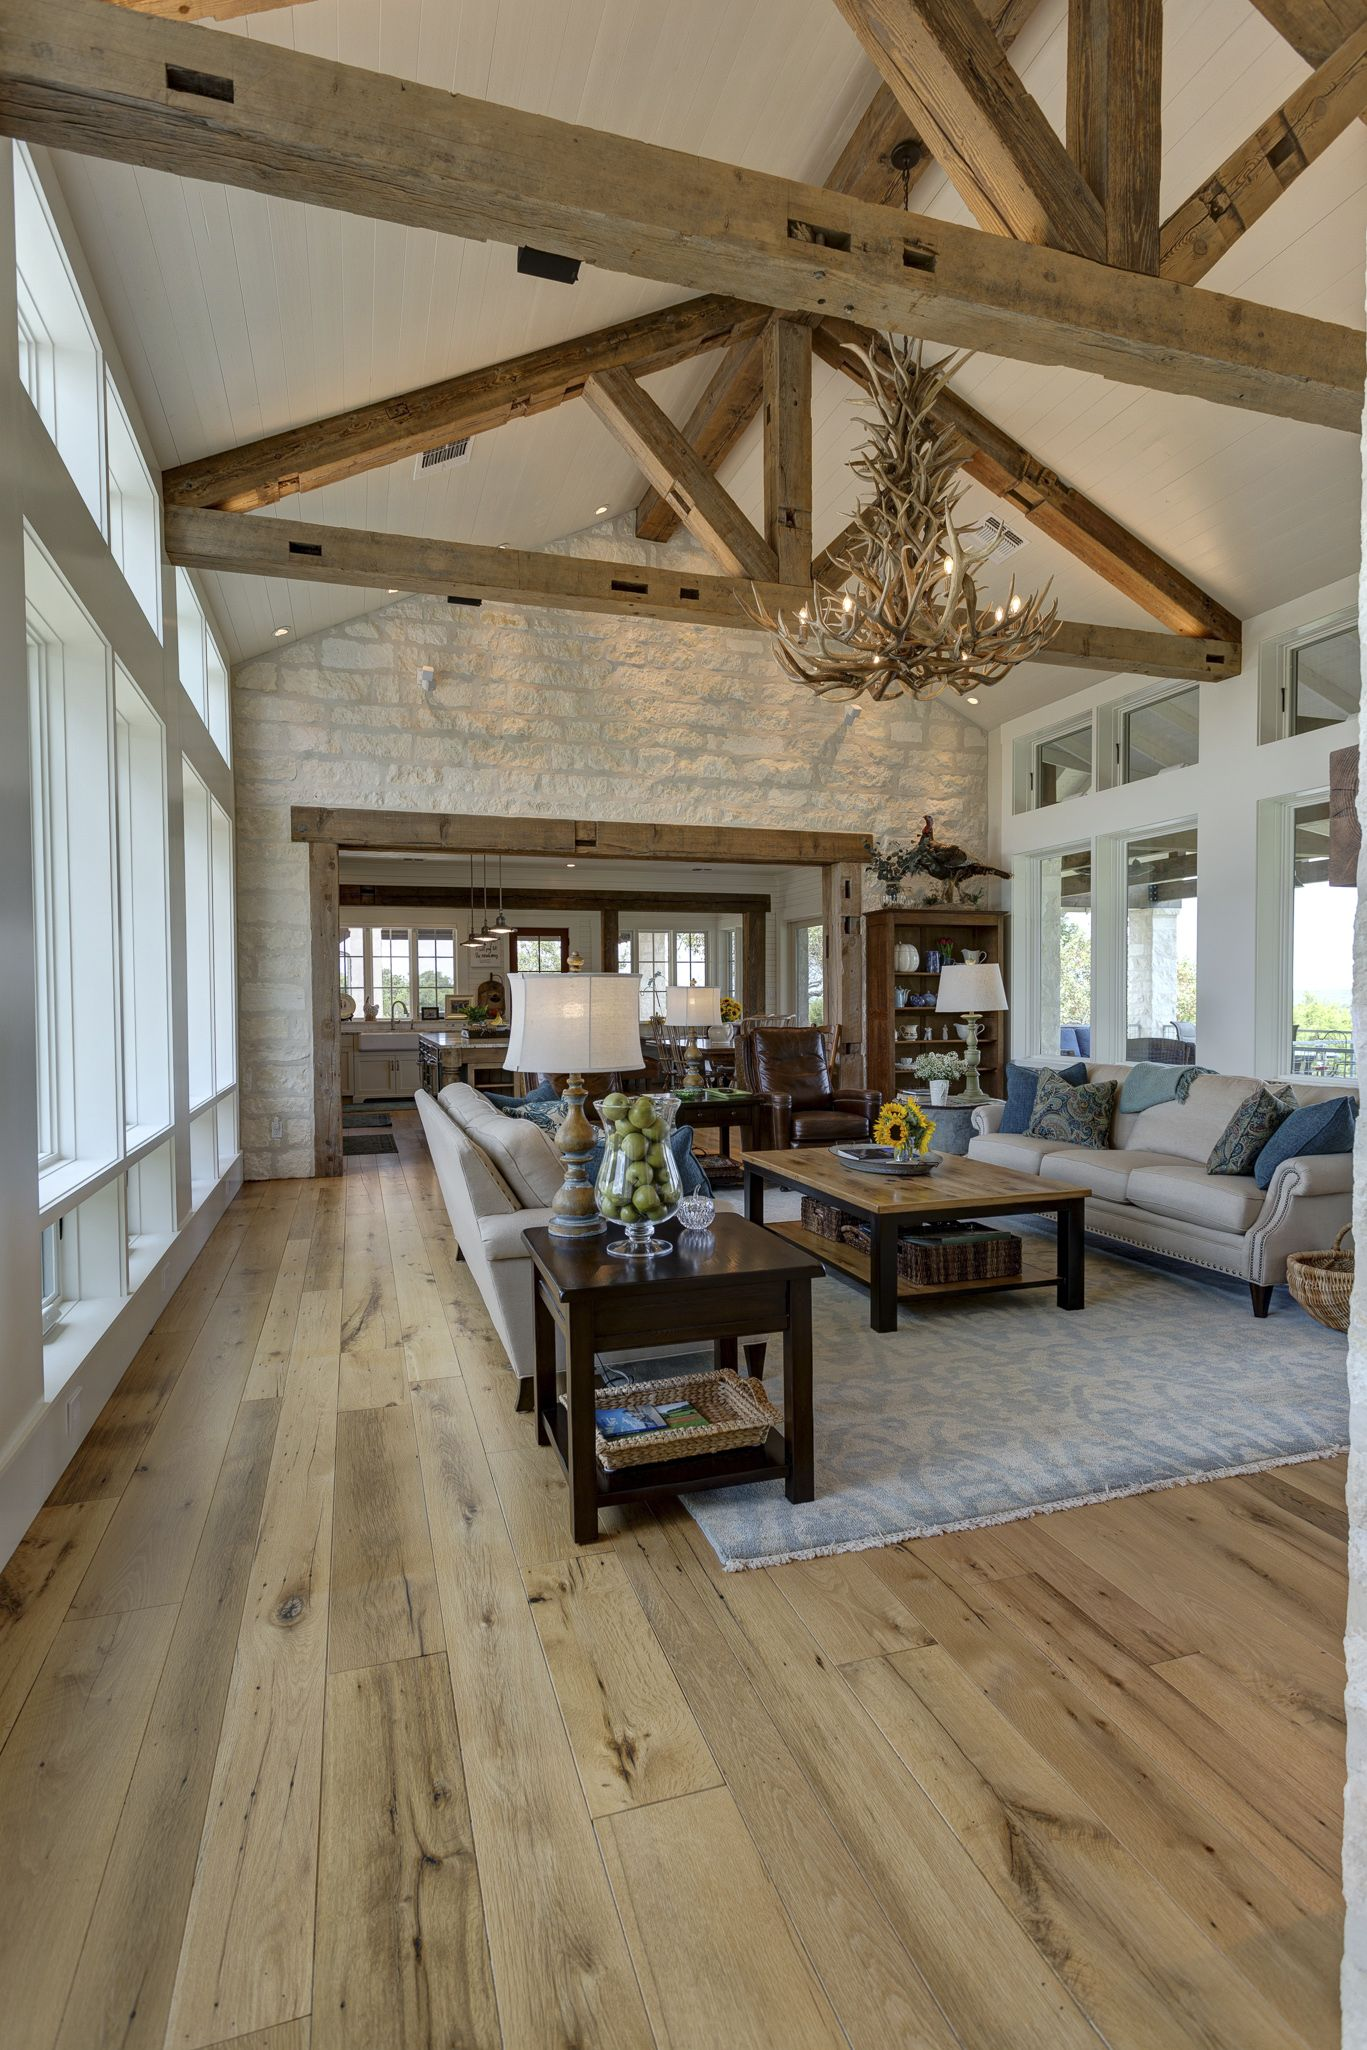 Small Custom Homes Texas Ranch Style Homes Custom Ranch Homes Design Interior Designs: Family Room. A Mix Of Old And New. Texas Farmhouse Style Home.